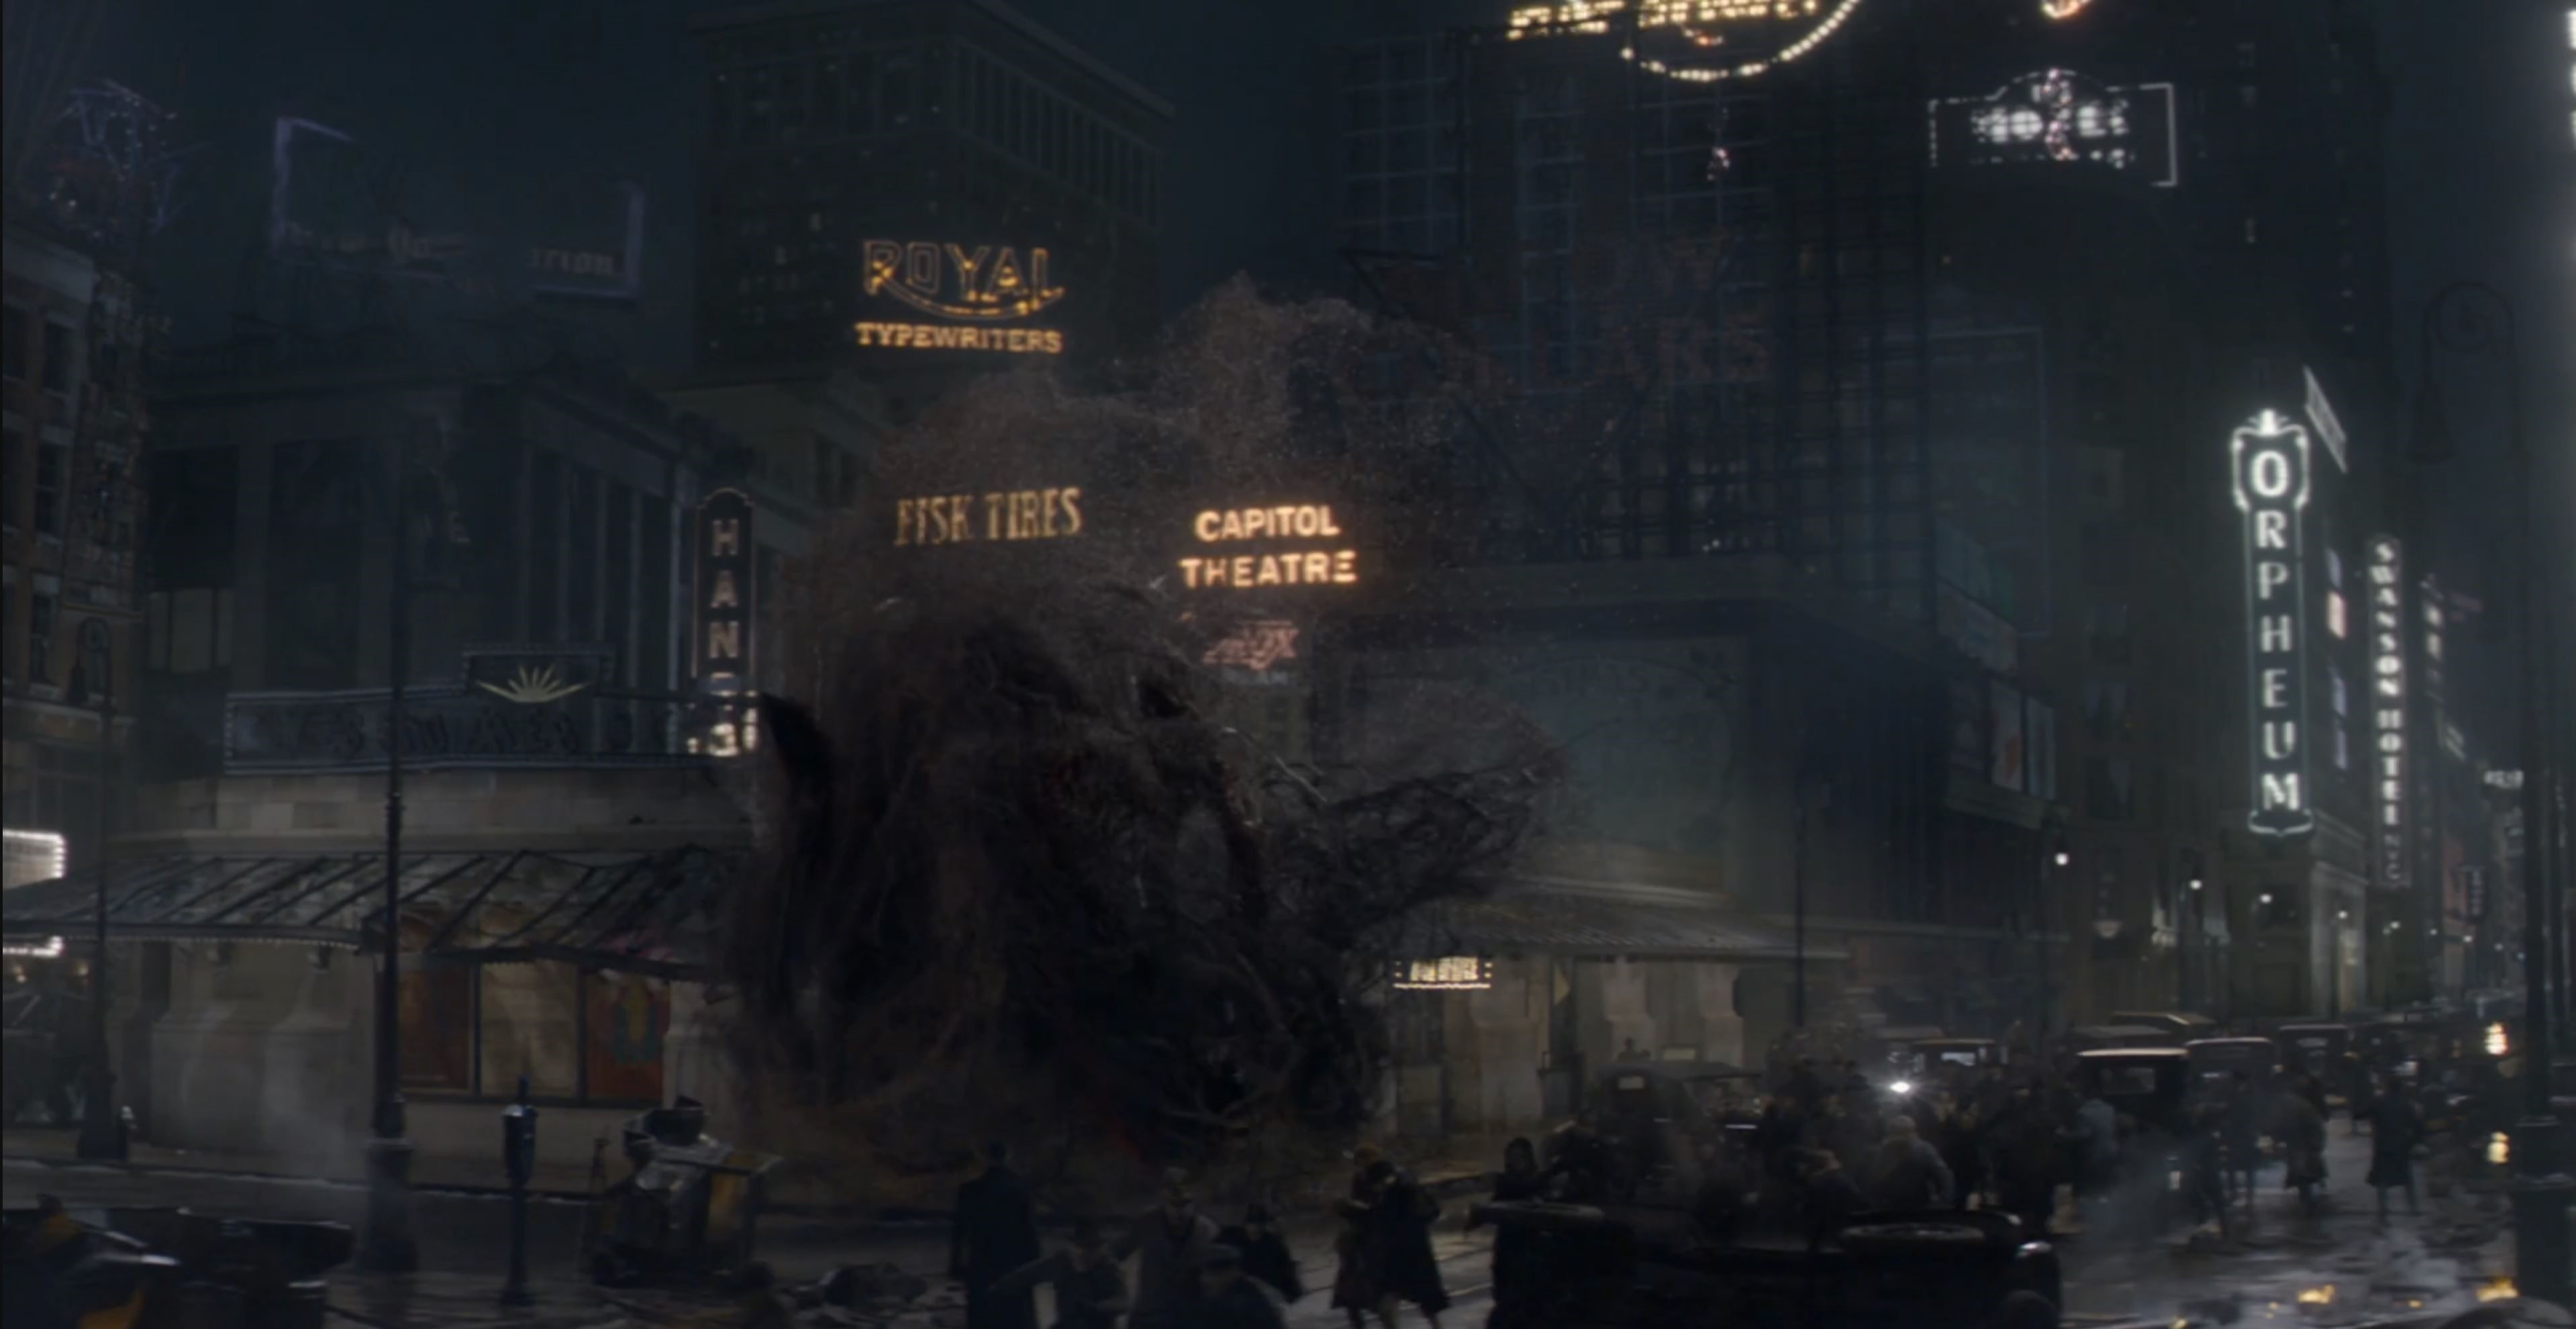 Capitol Theater Fantastic Beasts and Where to Find Them: New York City Locations